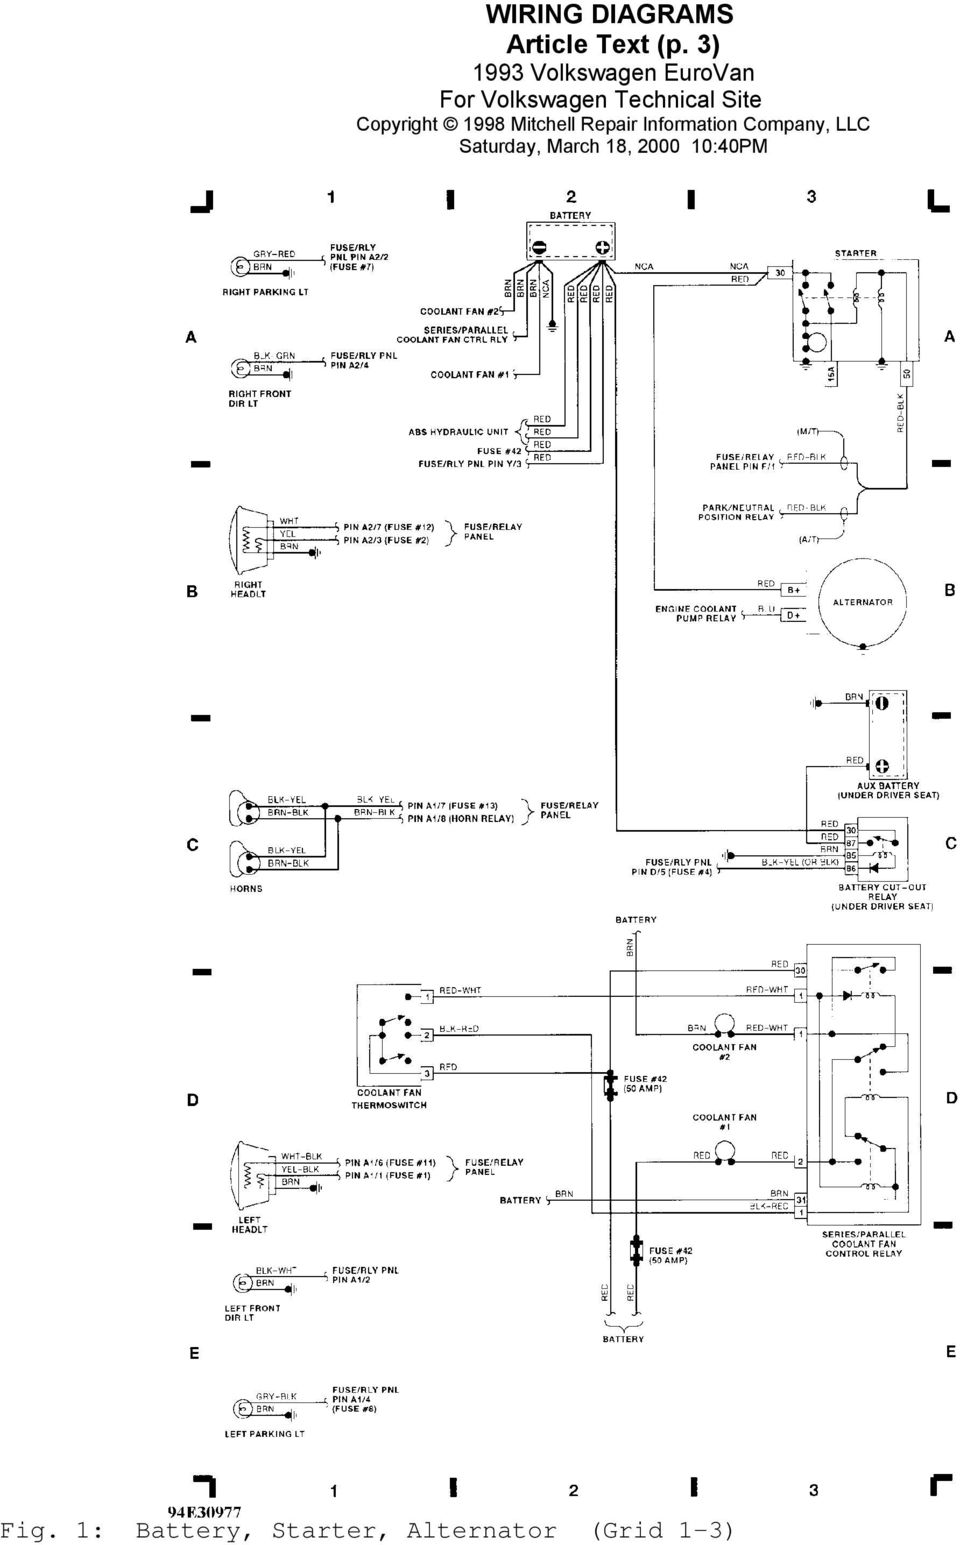 1993 wiring diagrams volkswagen wiring diagrams ... eurovan wiring diagram